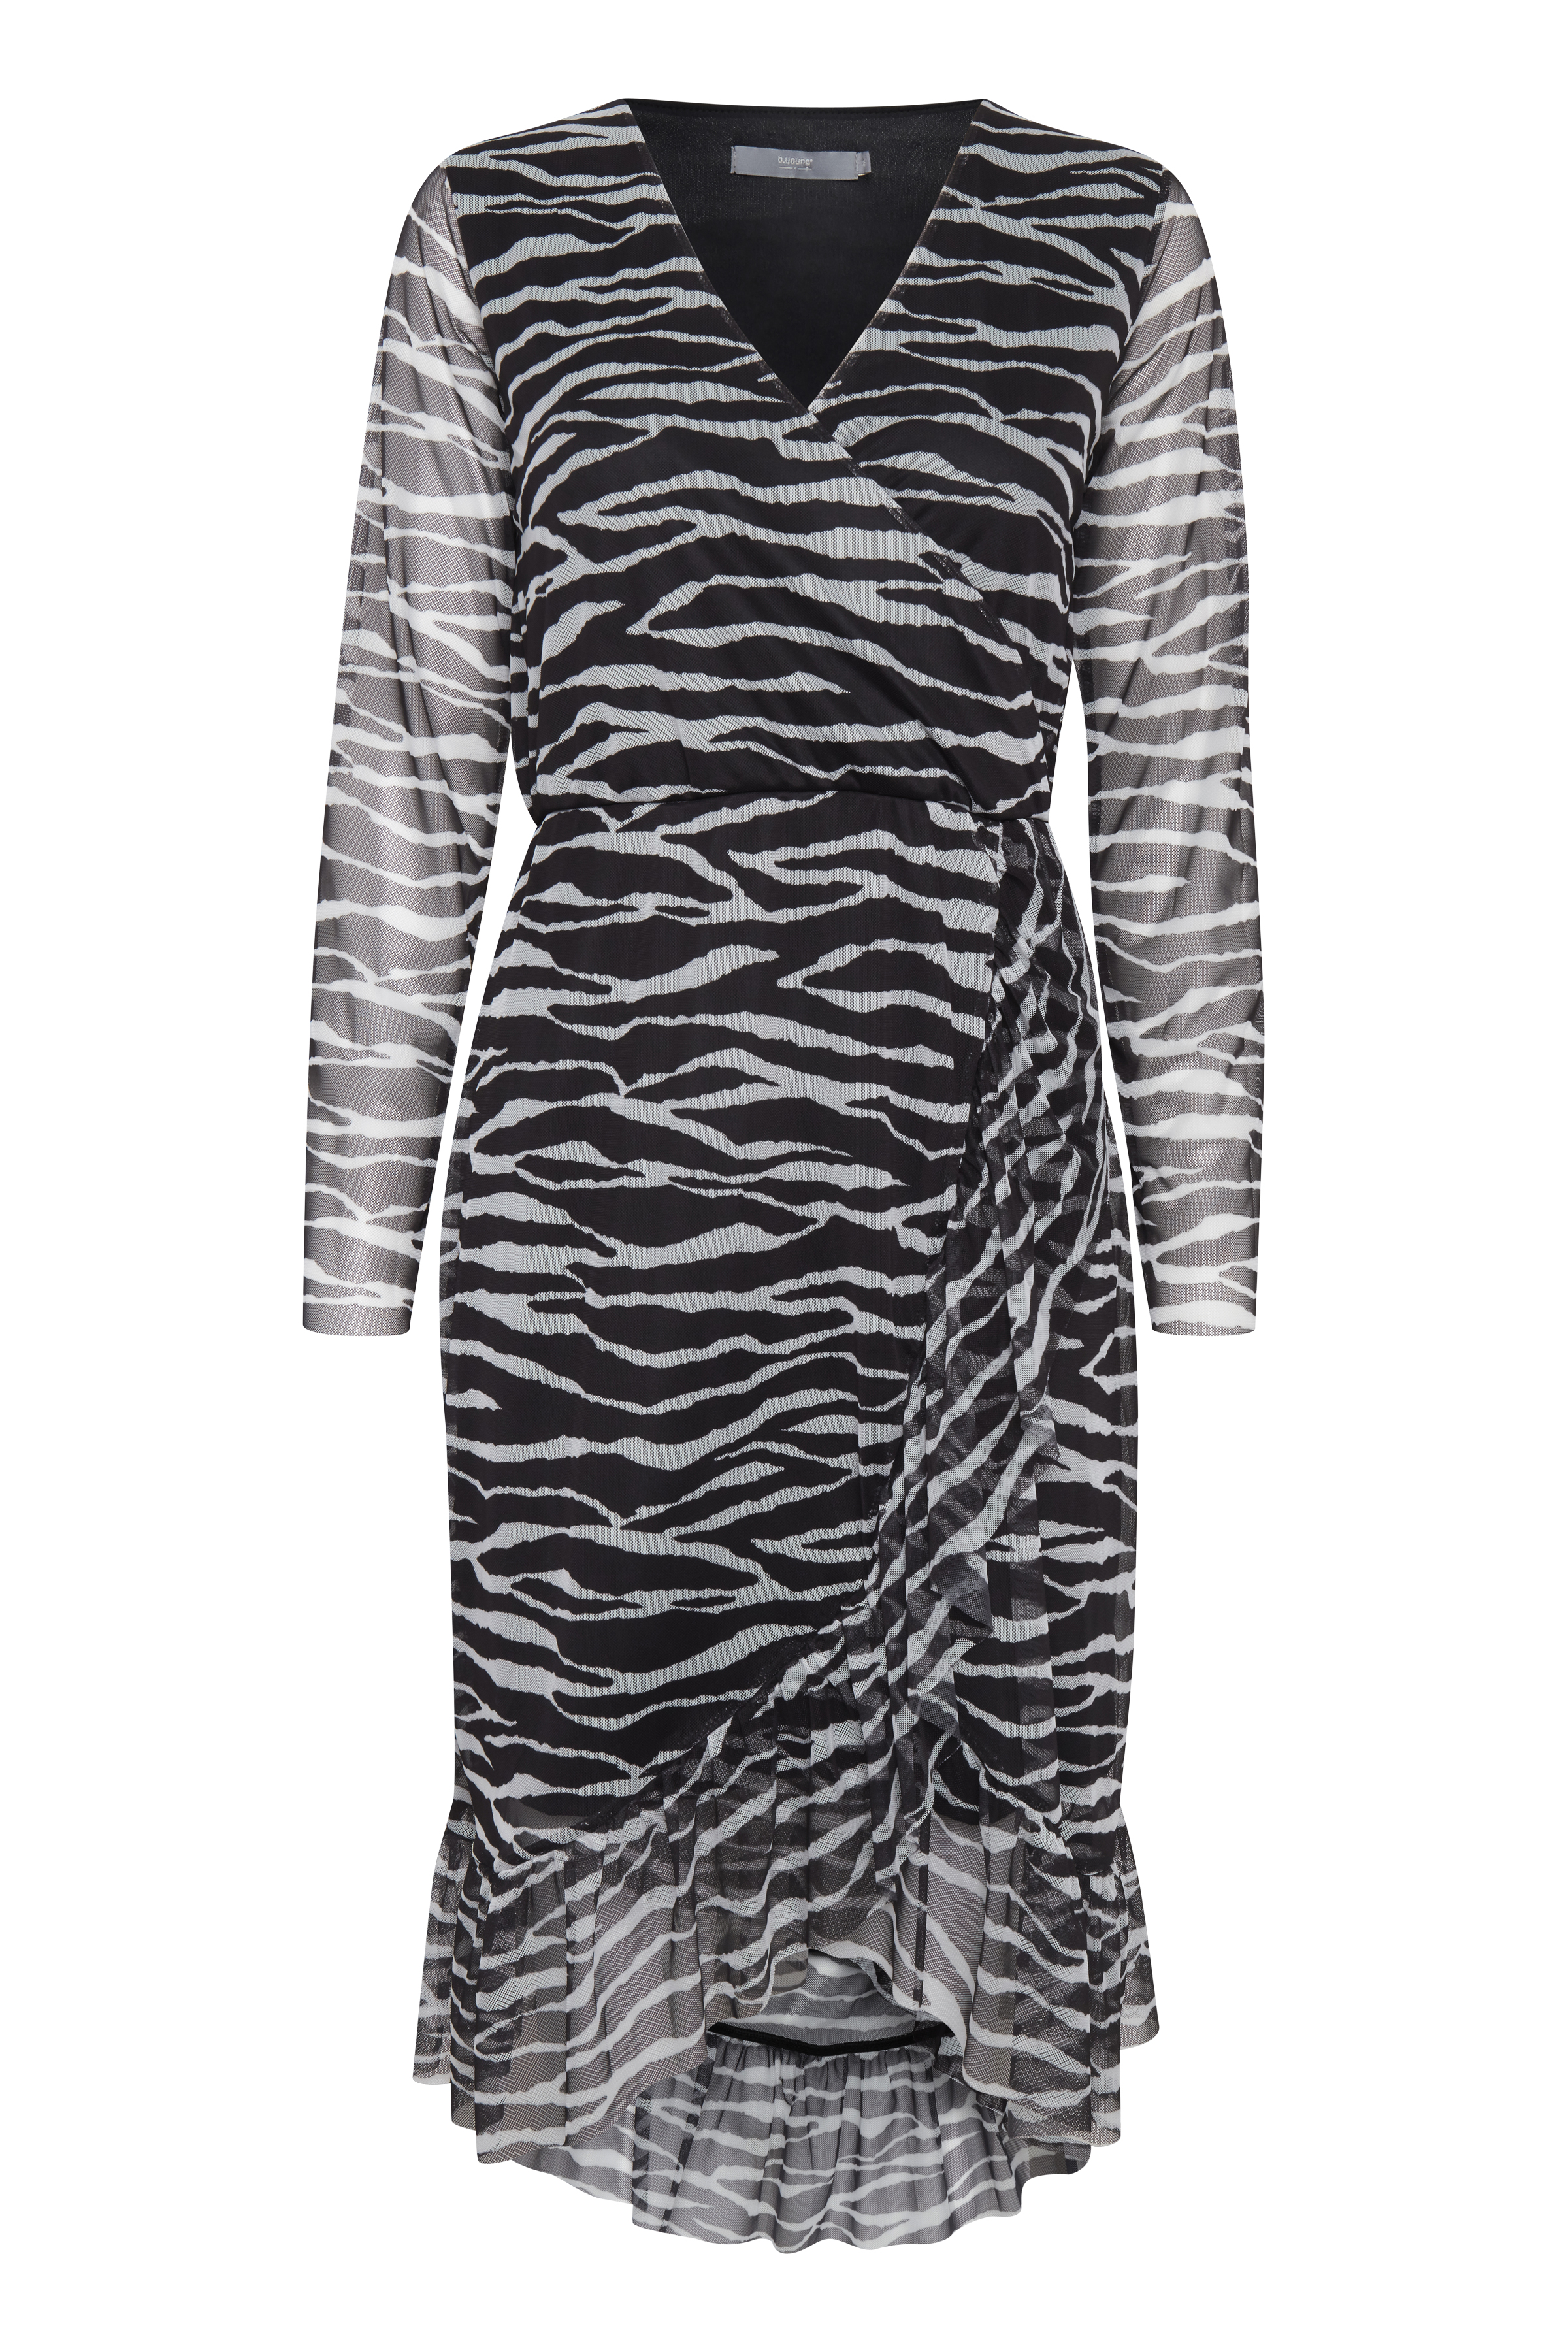 Zebra combi 1 Jersey dress from b.young – Buy Zebra combi 1 Jersey dress from size XS-XL here